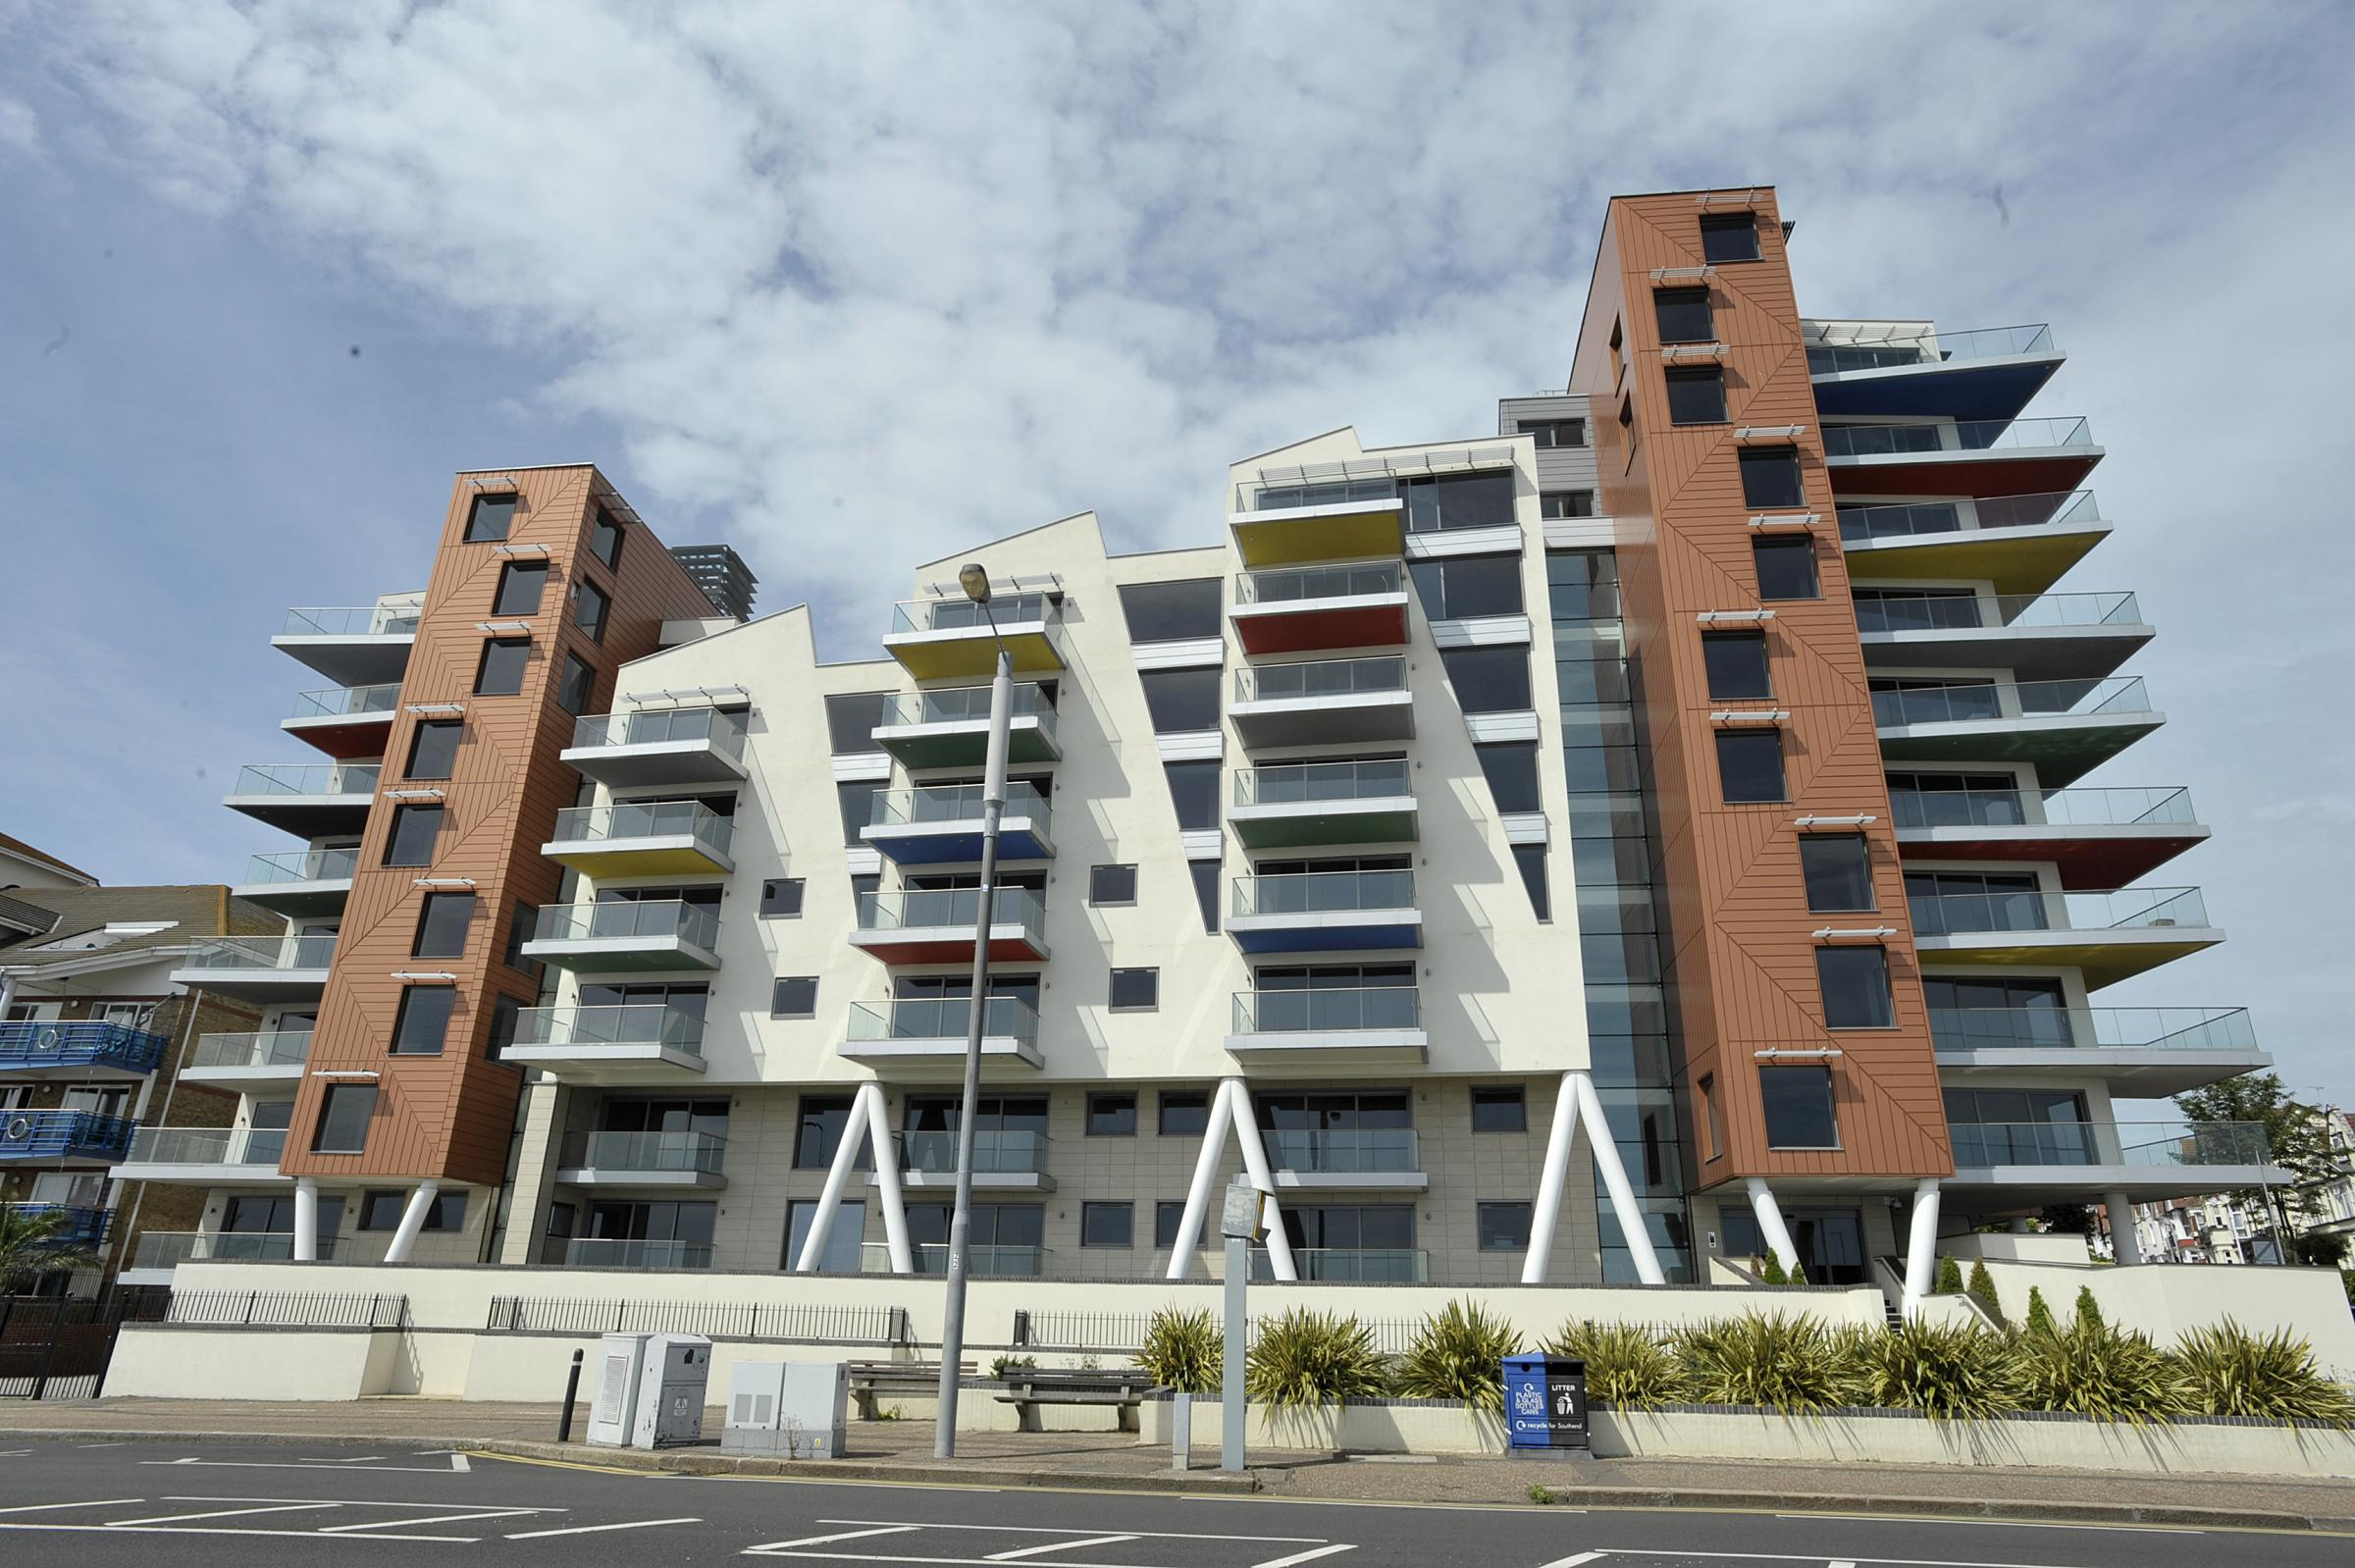 Seafront flats set to grow with rooftop apartments